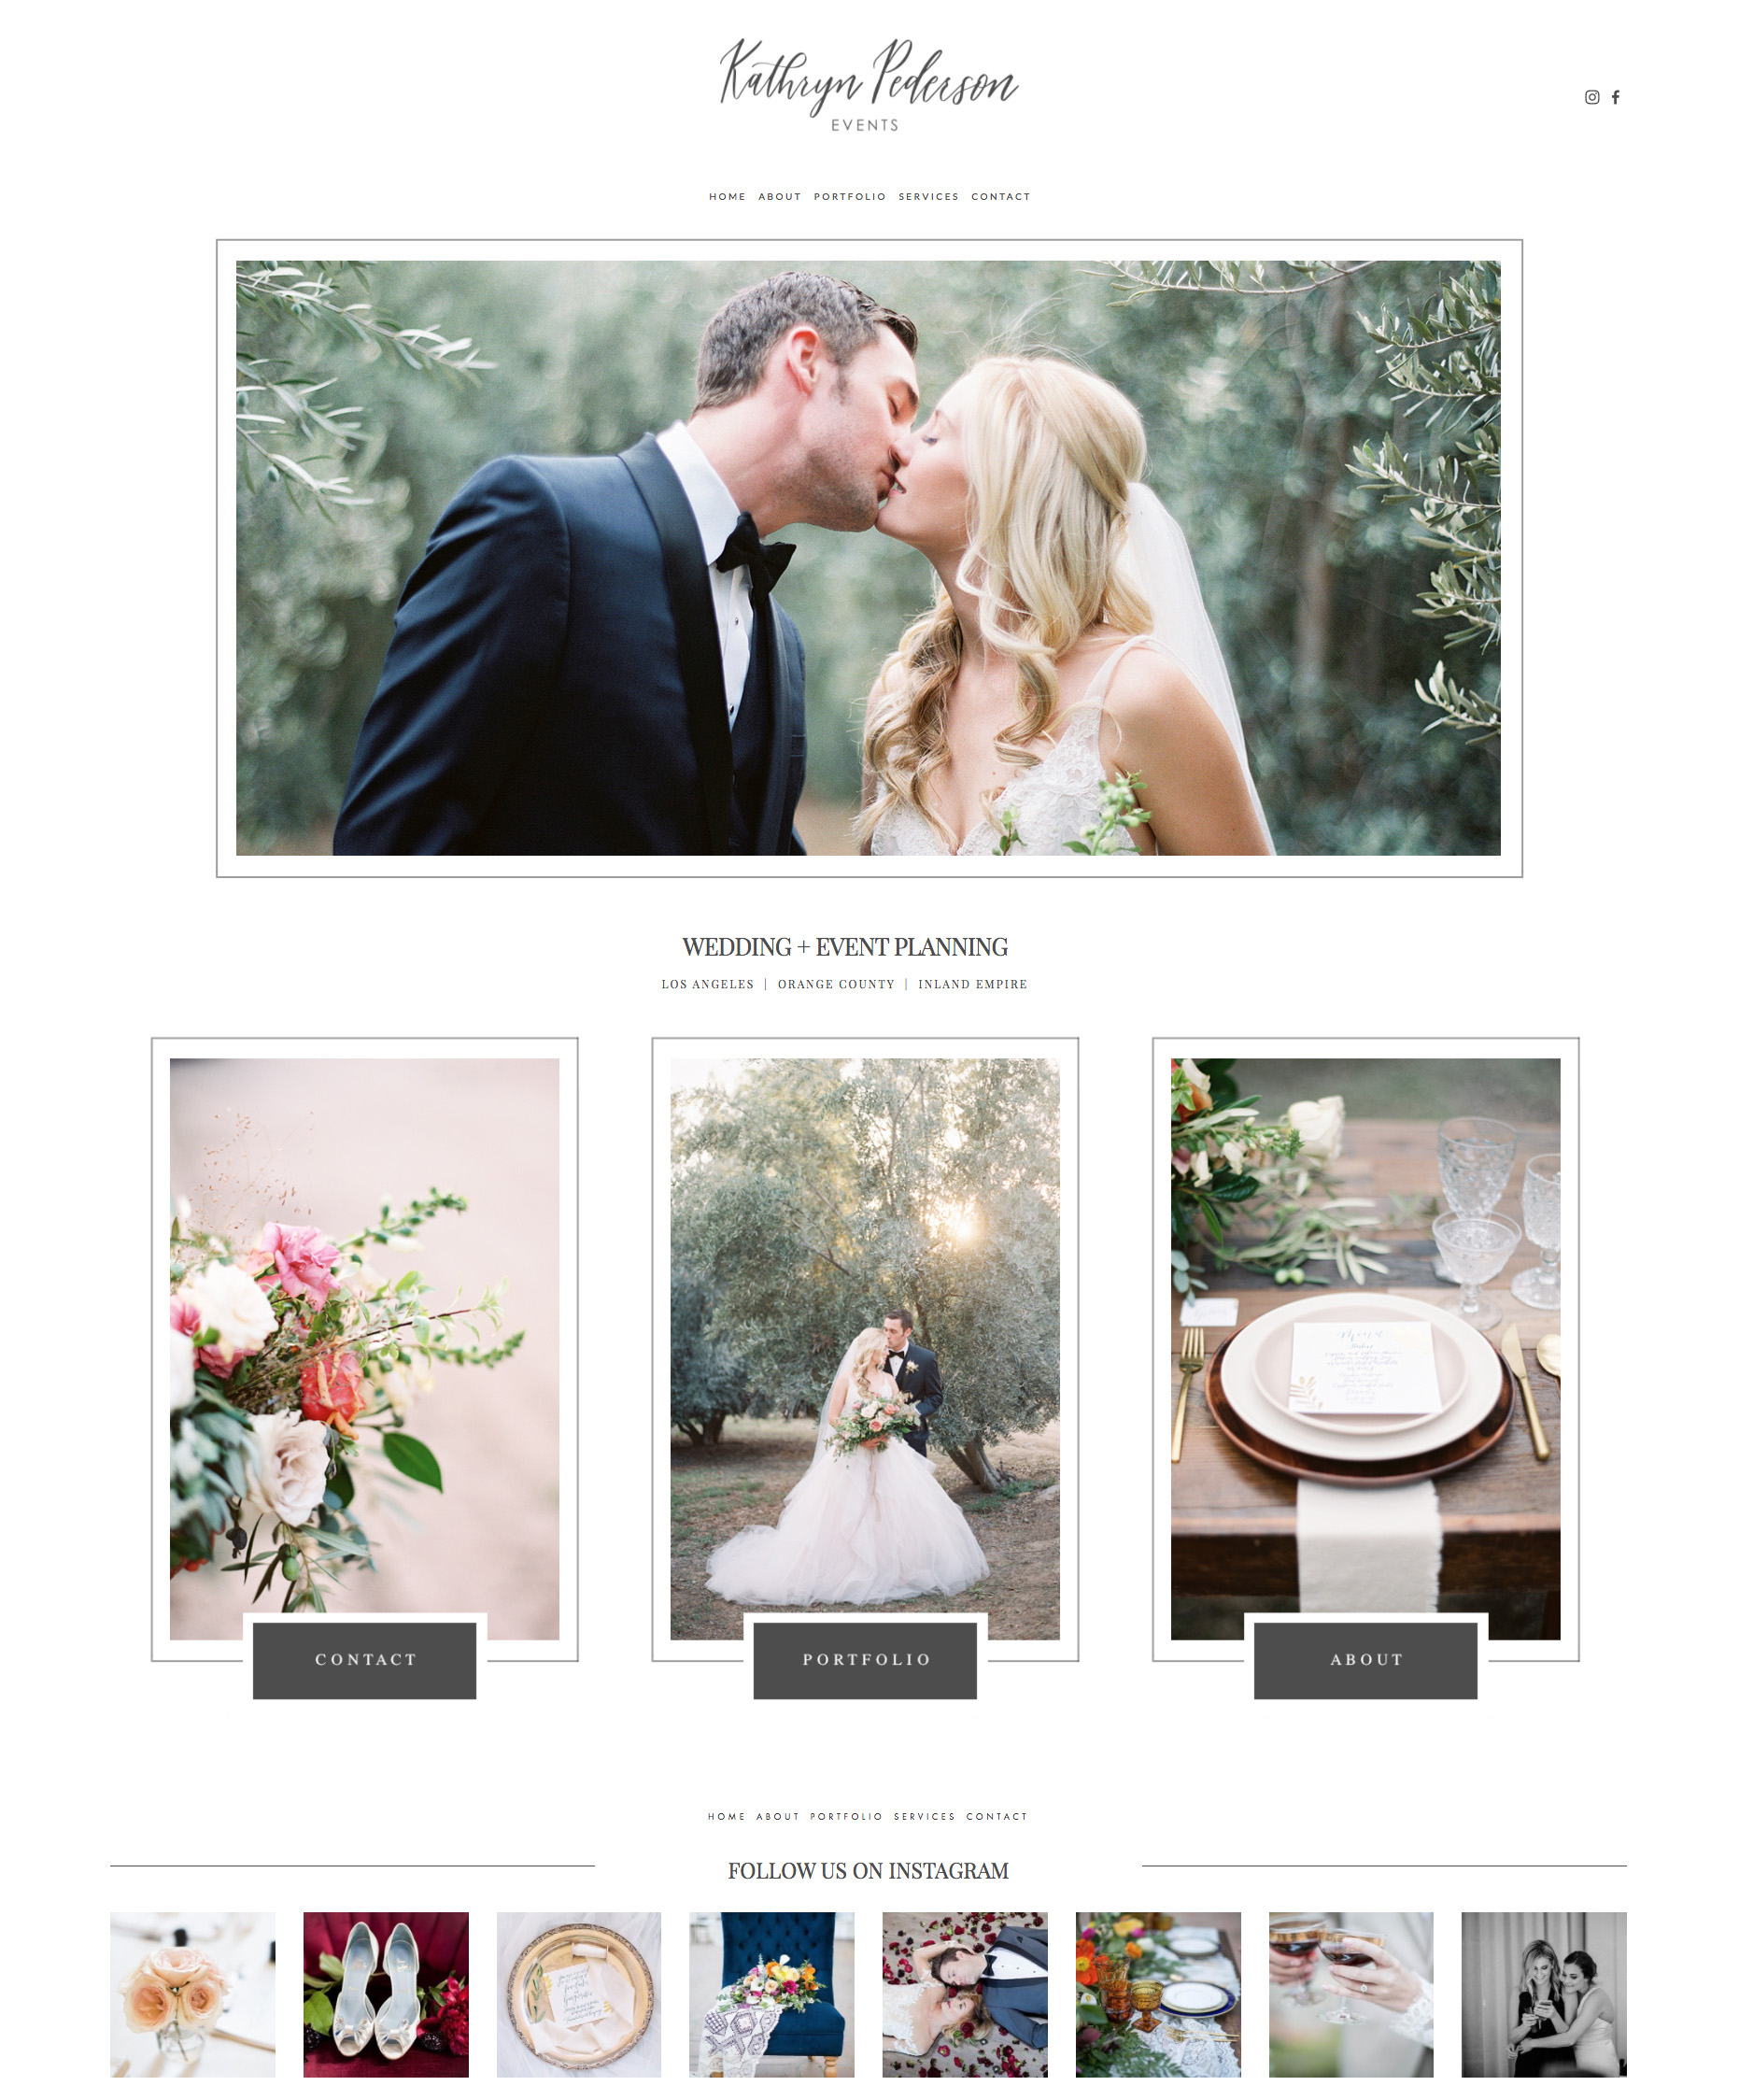 Squarespace Website Designer for Wedding Professionals and Creatives | The Editor's Touch